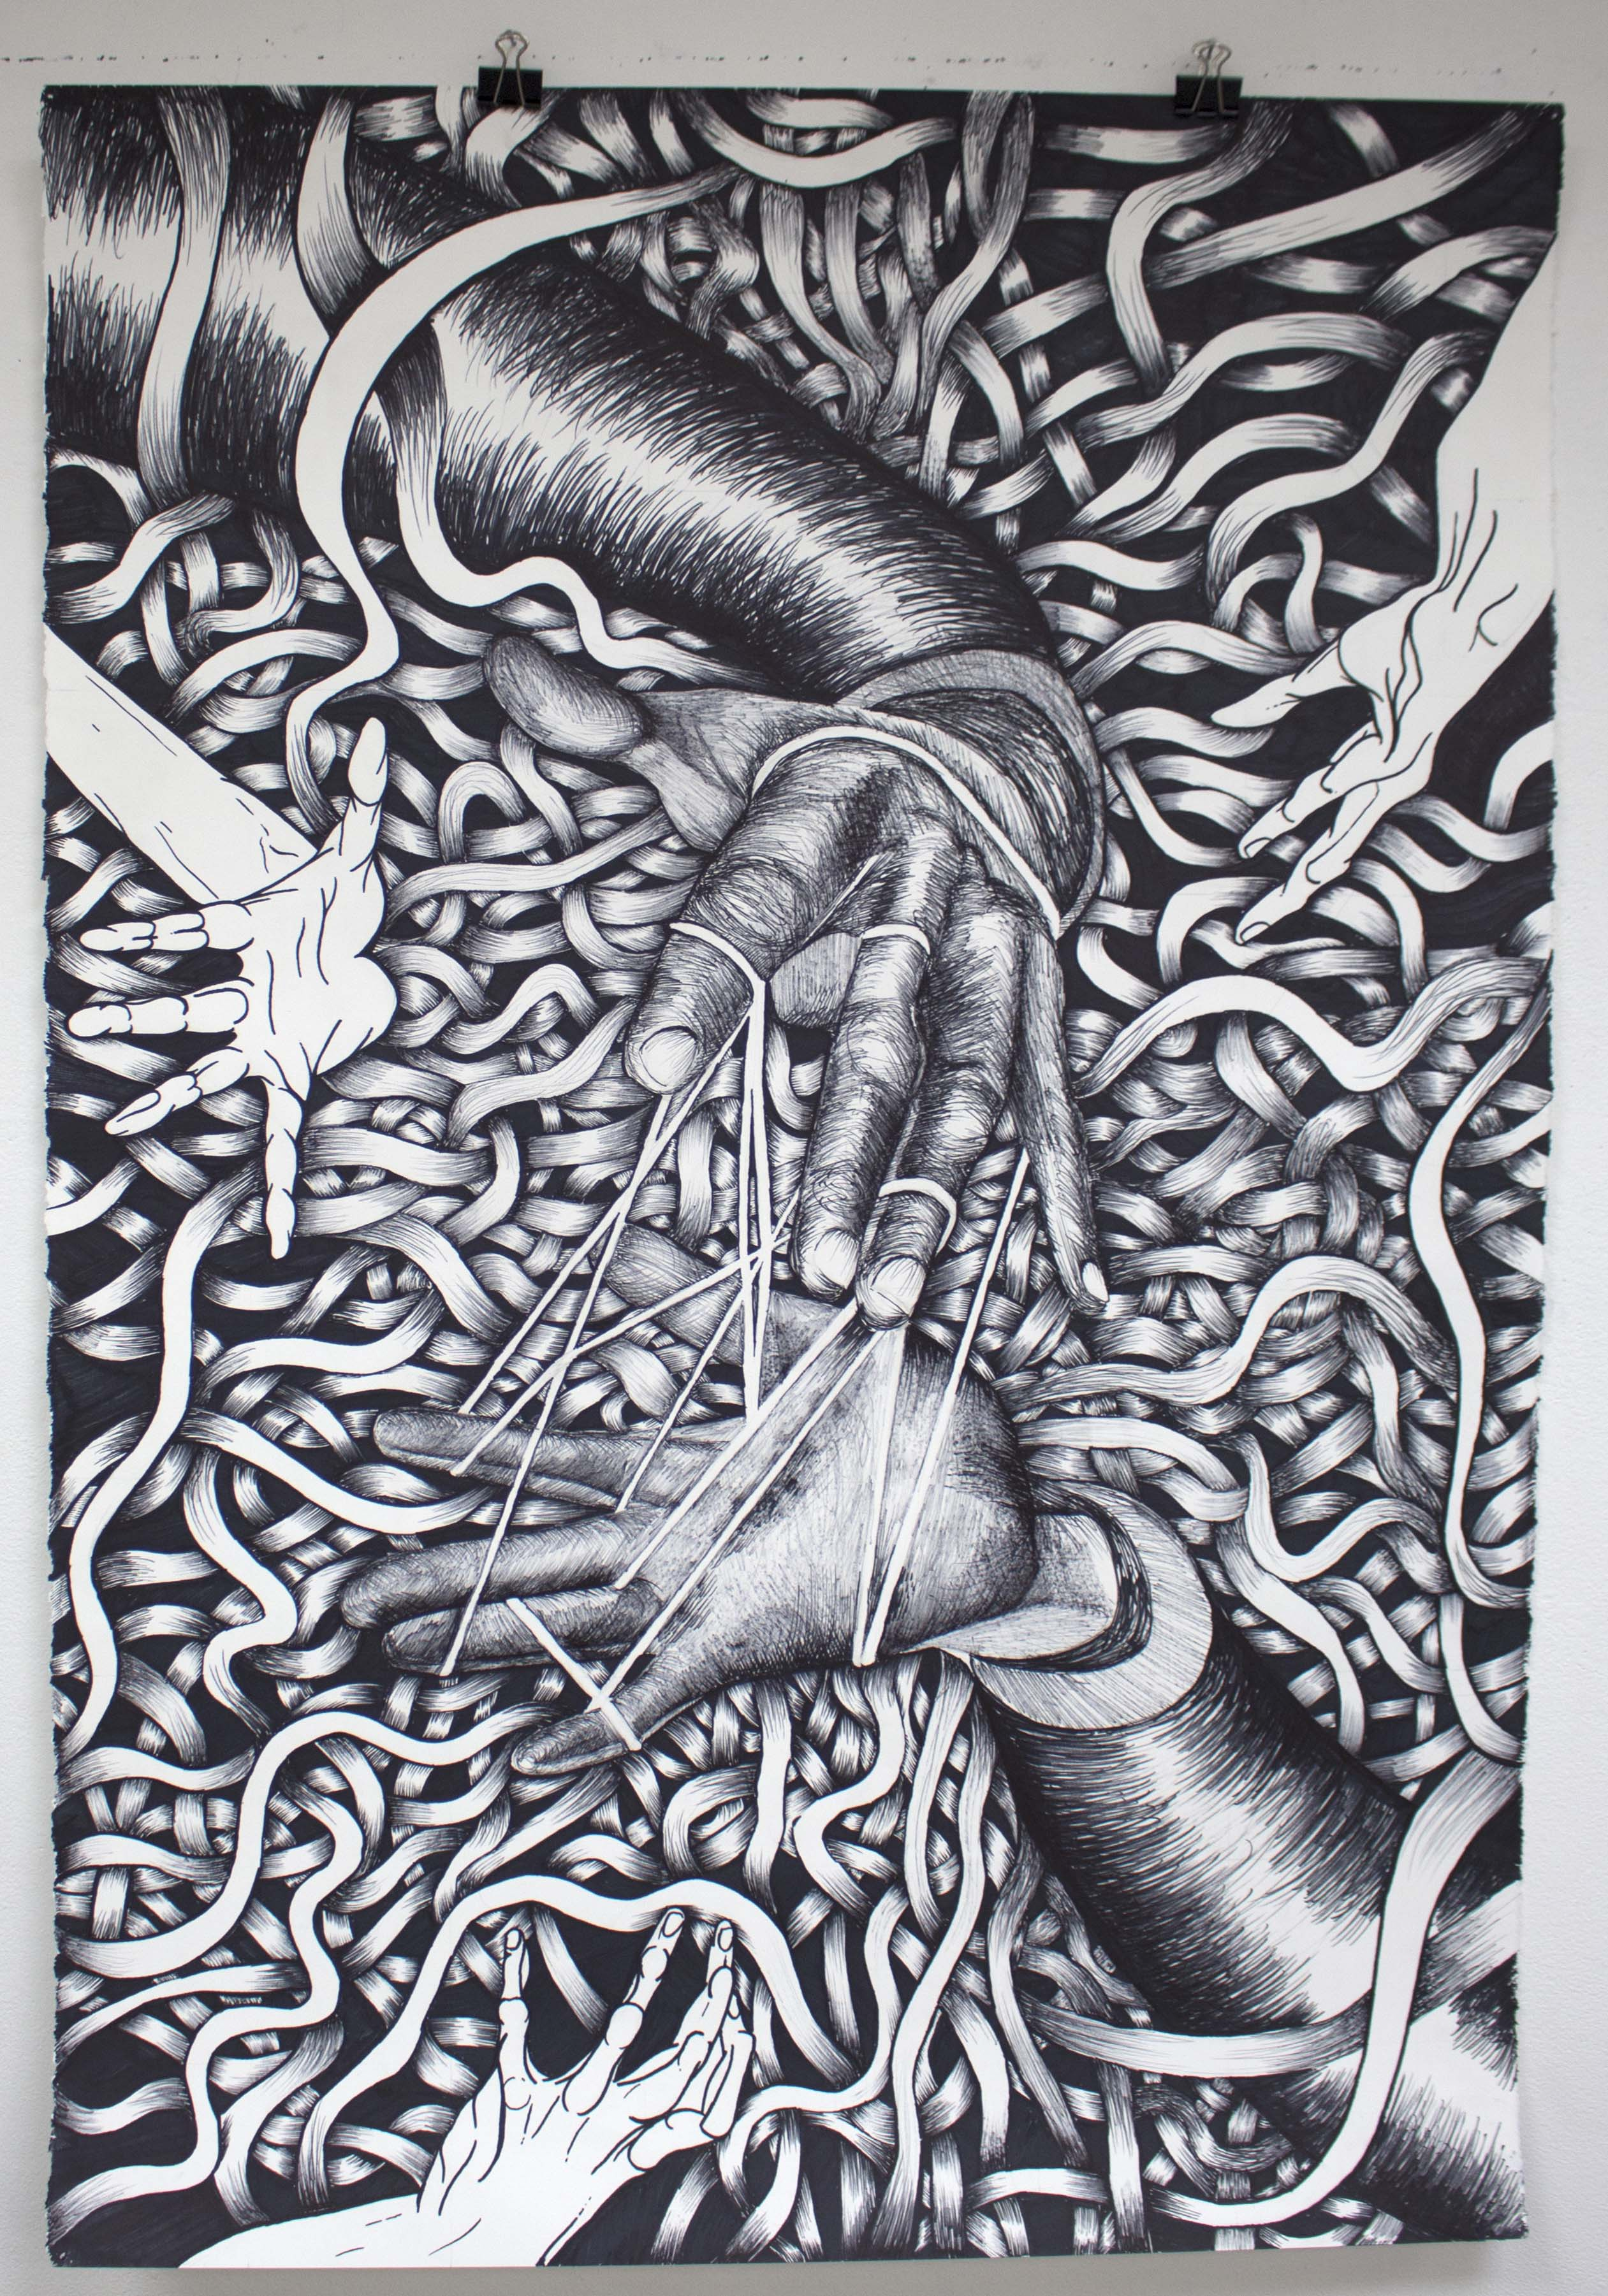 A drawing of hands